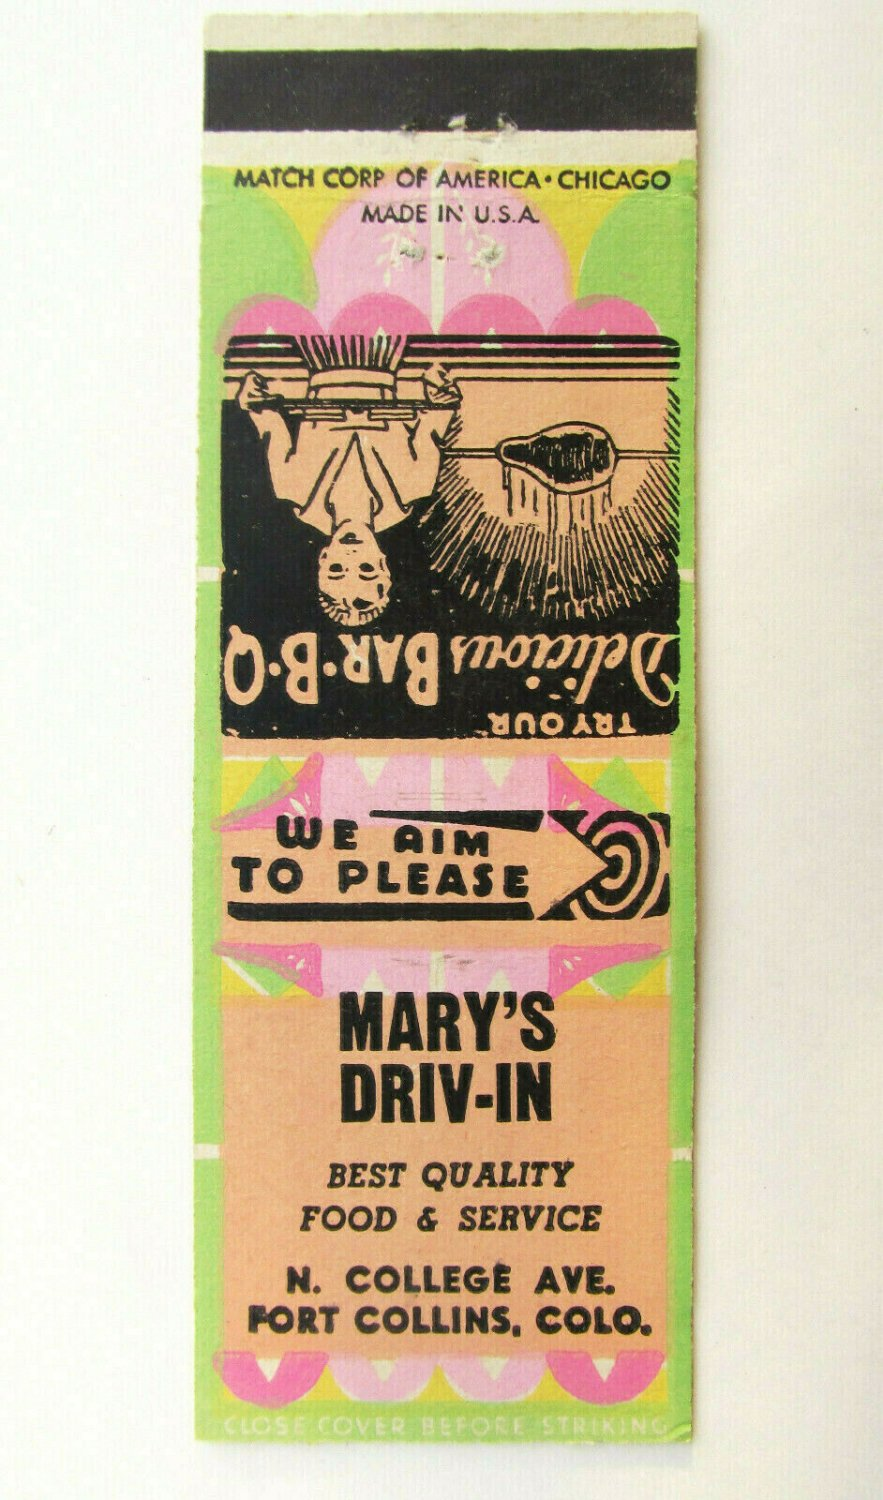 Mary's Driv-In - Fort Collins, Colorado Restaurant 20 Strike Matchbook Cover CO